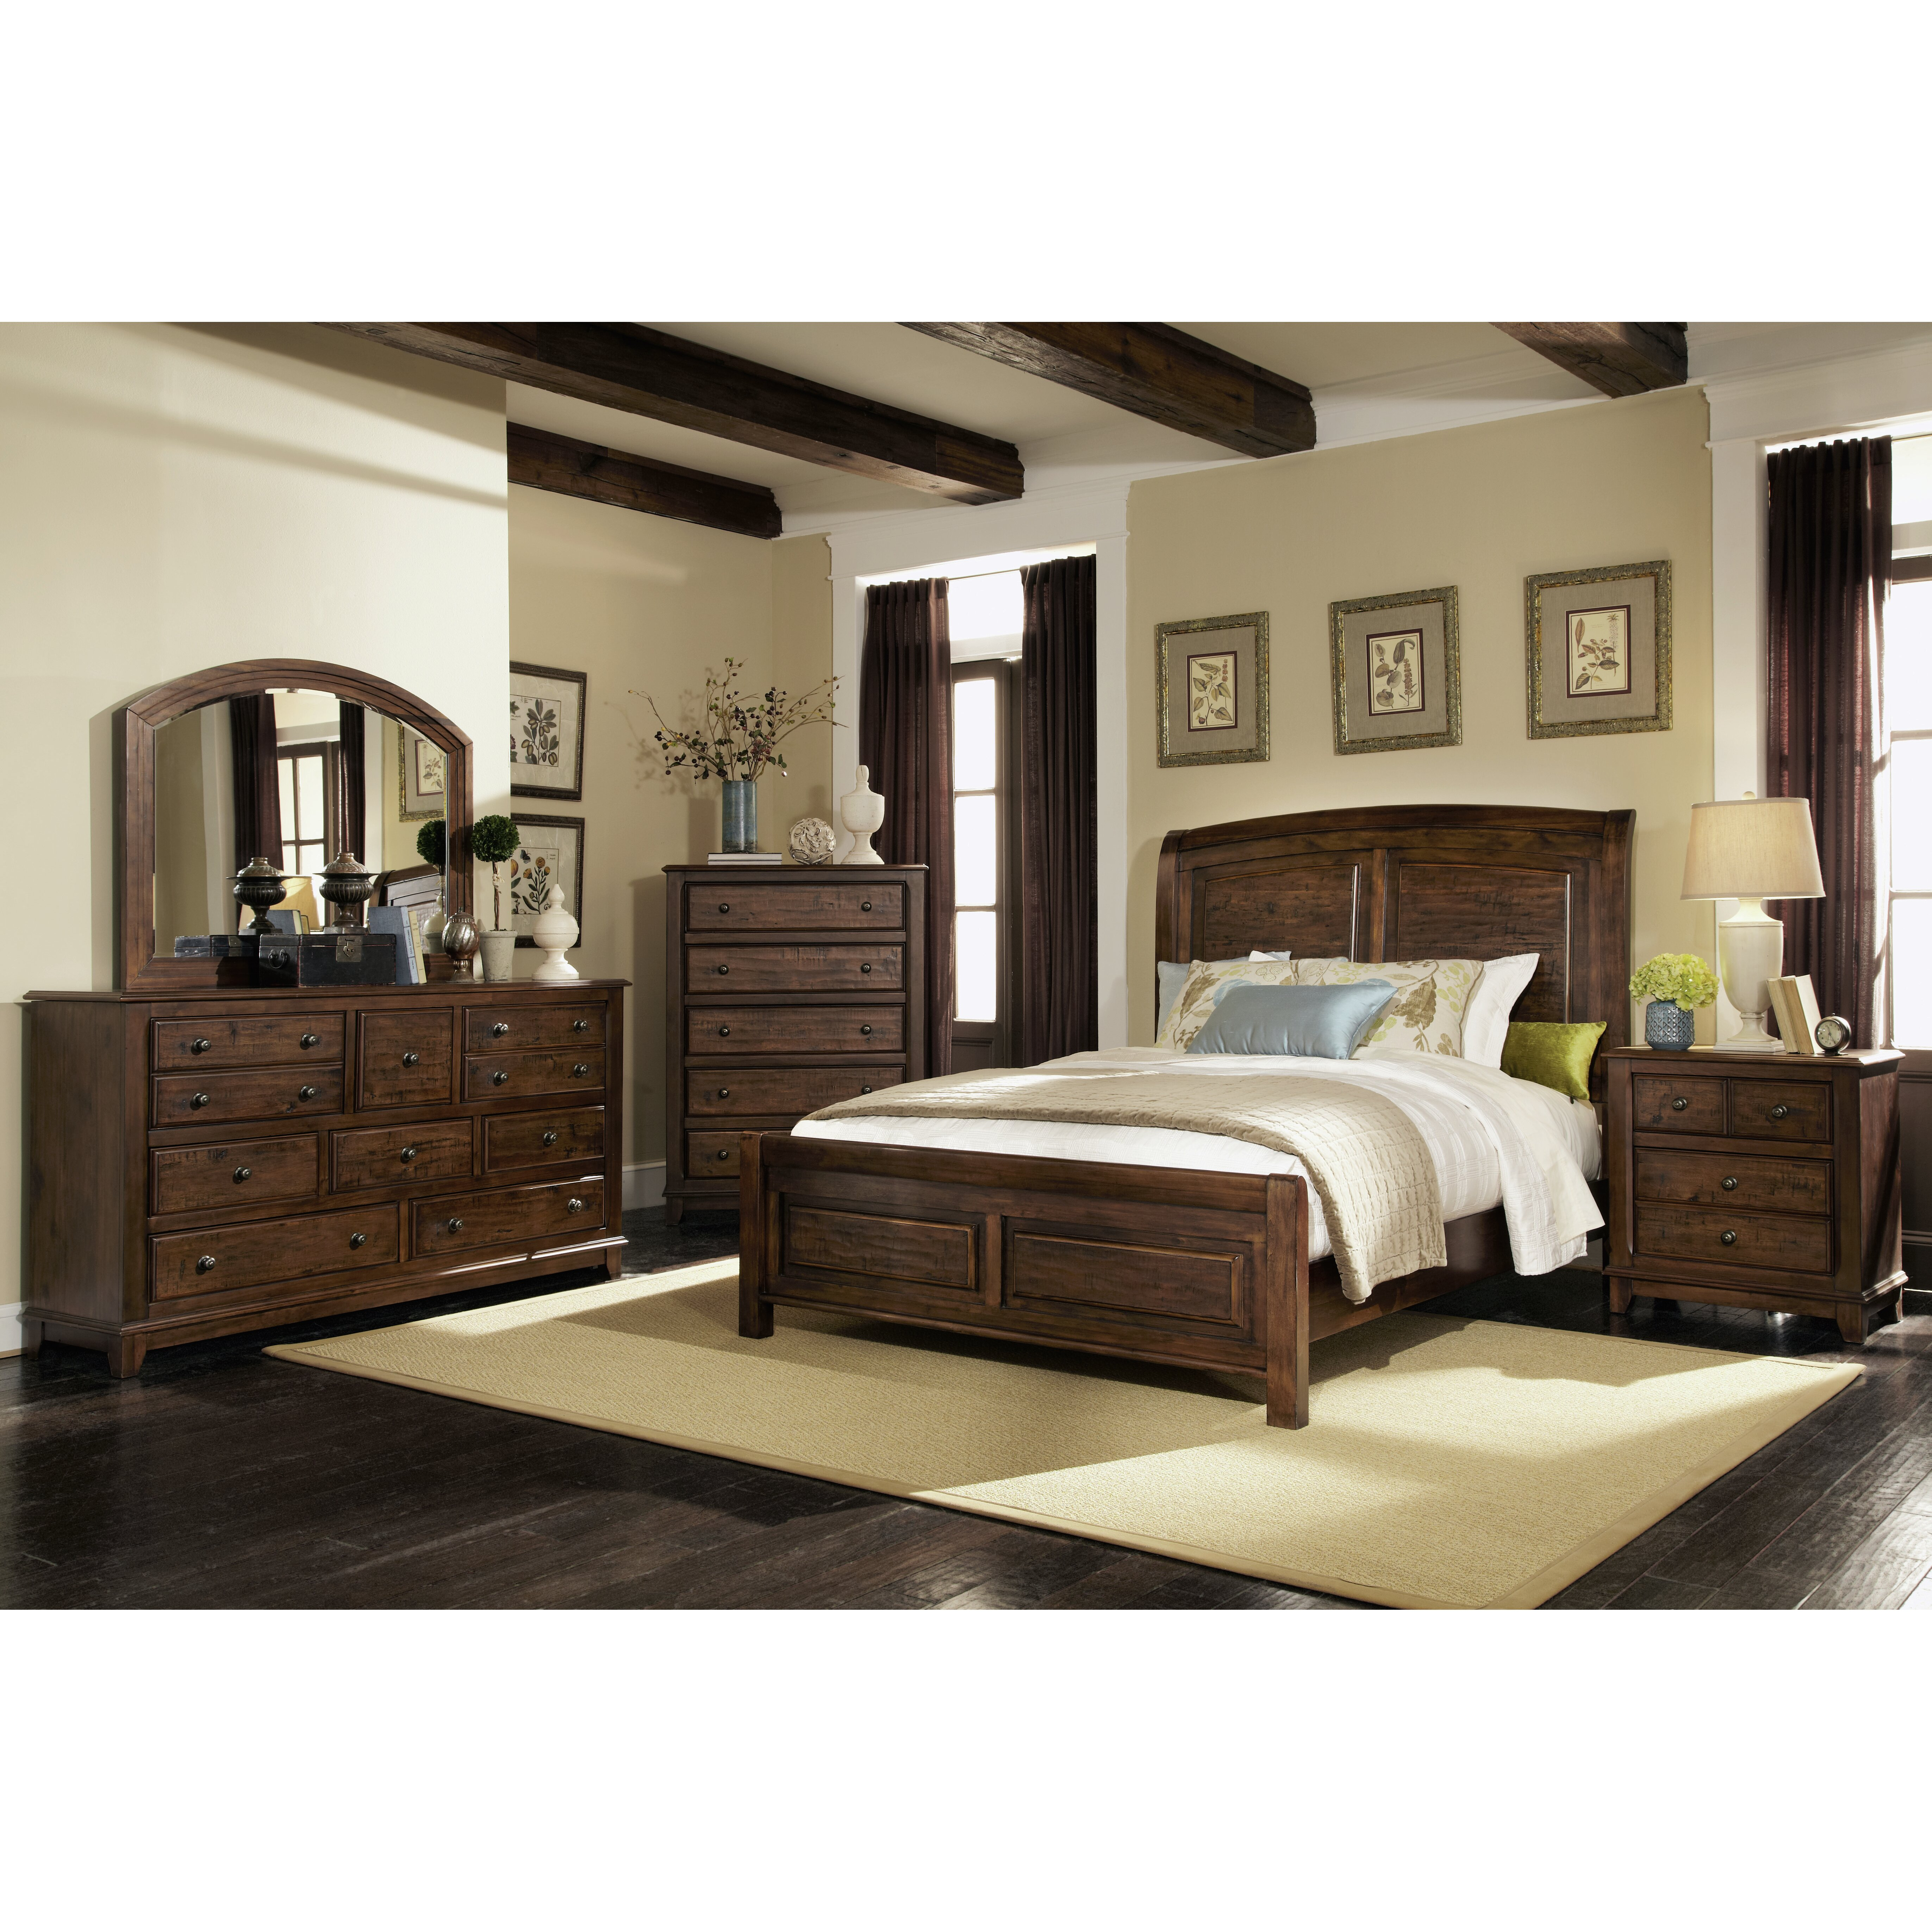 Darby Home Co Queen Panel Customizable Bedroom Set Reviews Wayfair